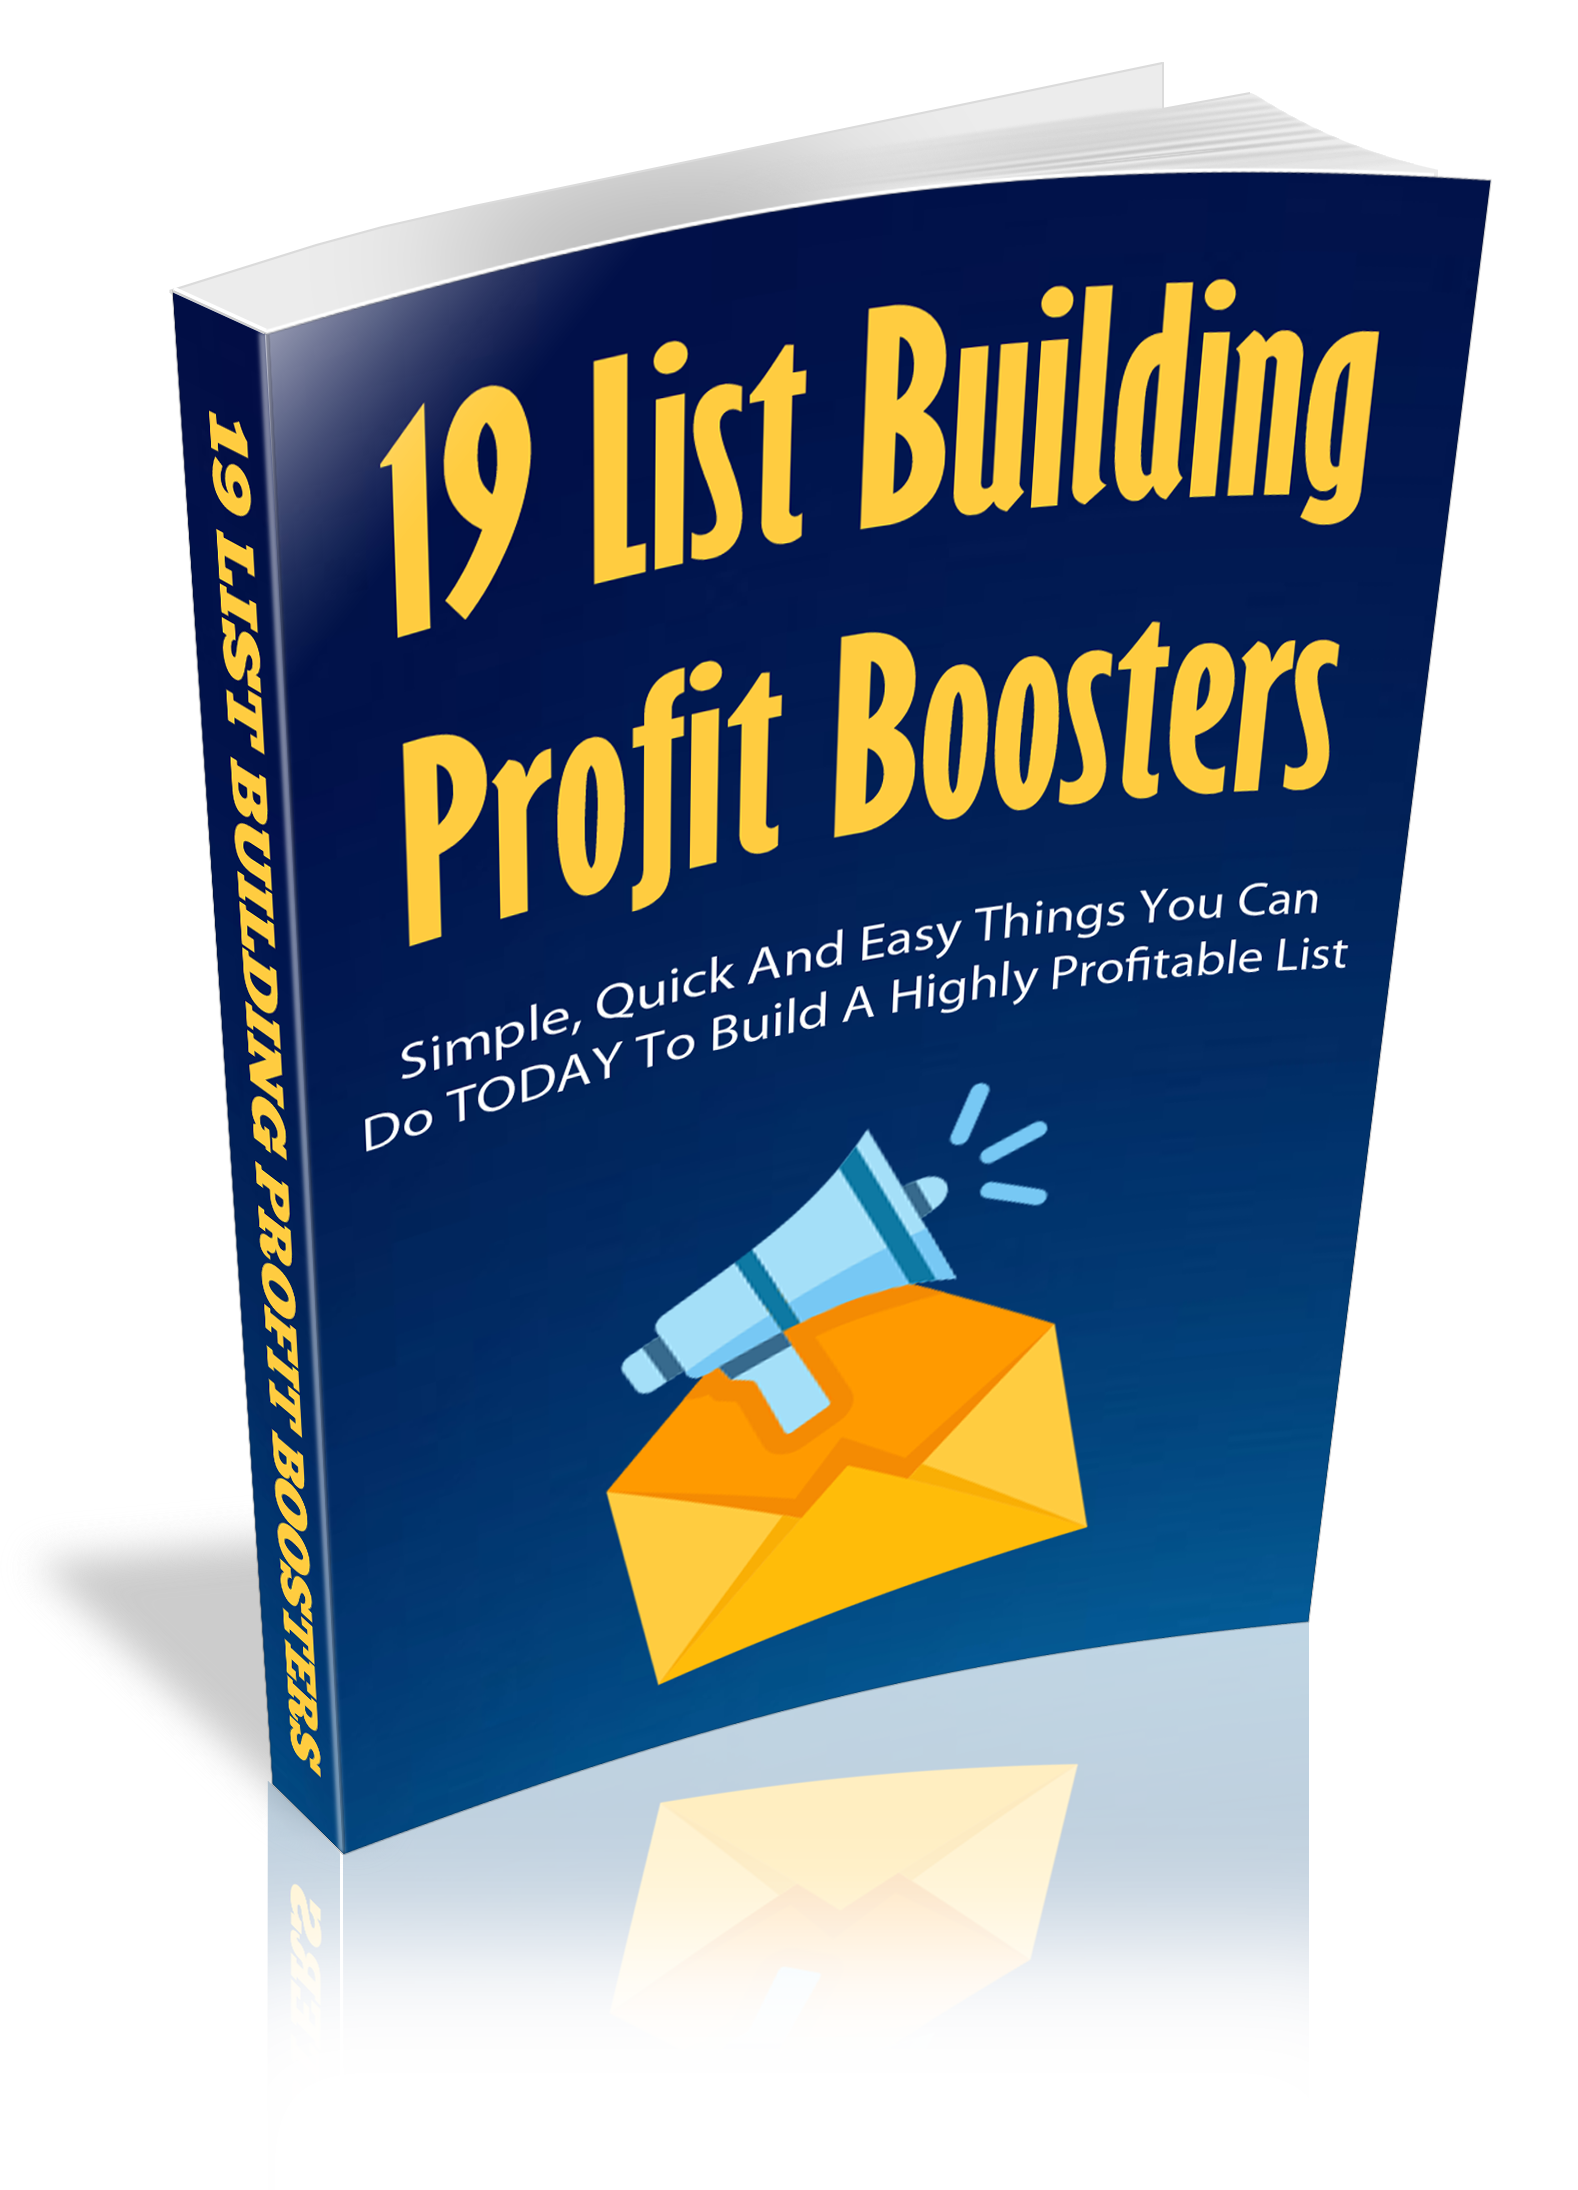 19 List Building Profit Boosters